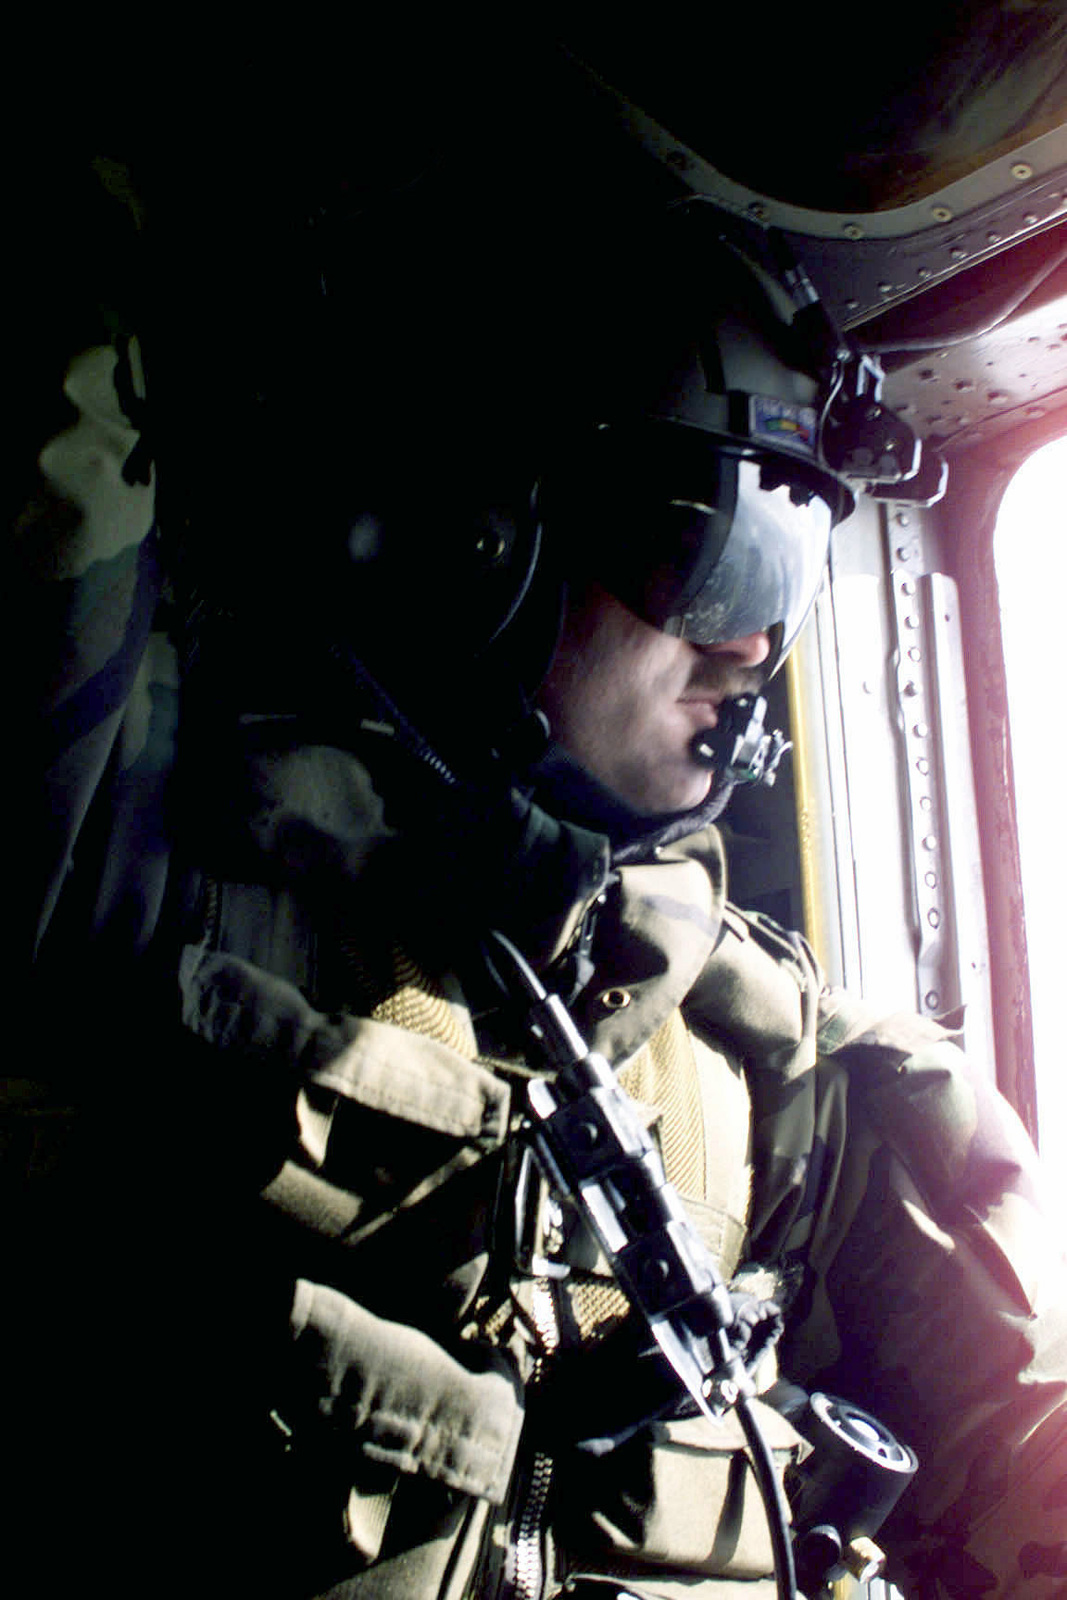 STAFF Sergeant, Strong, USAF, MH-53 Pave Low helicopter